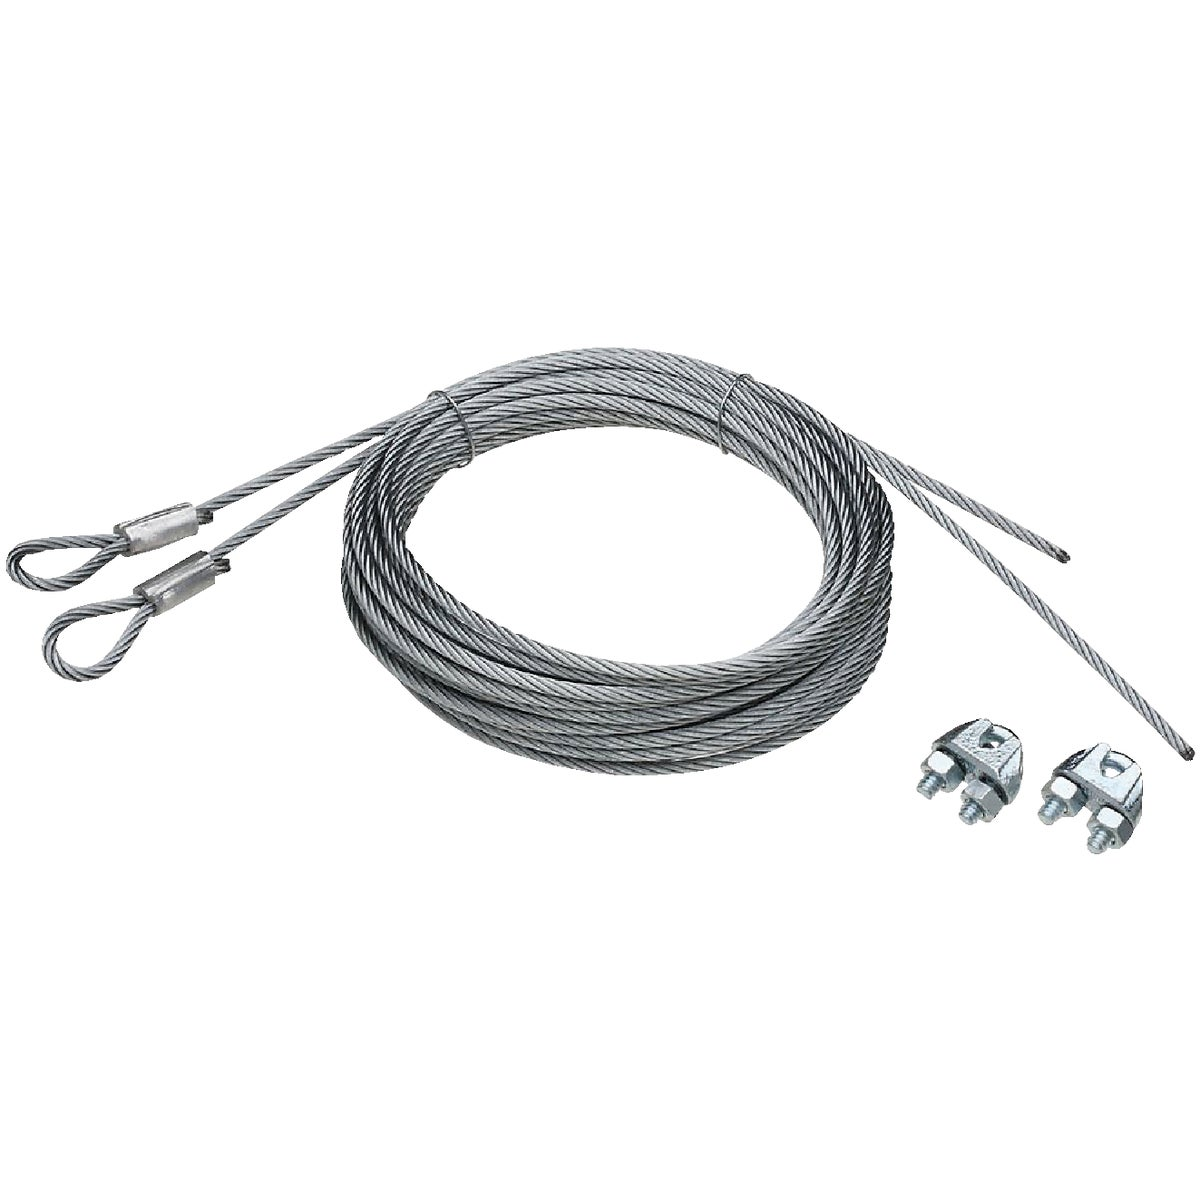 14' HD EXTENSION CABLE